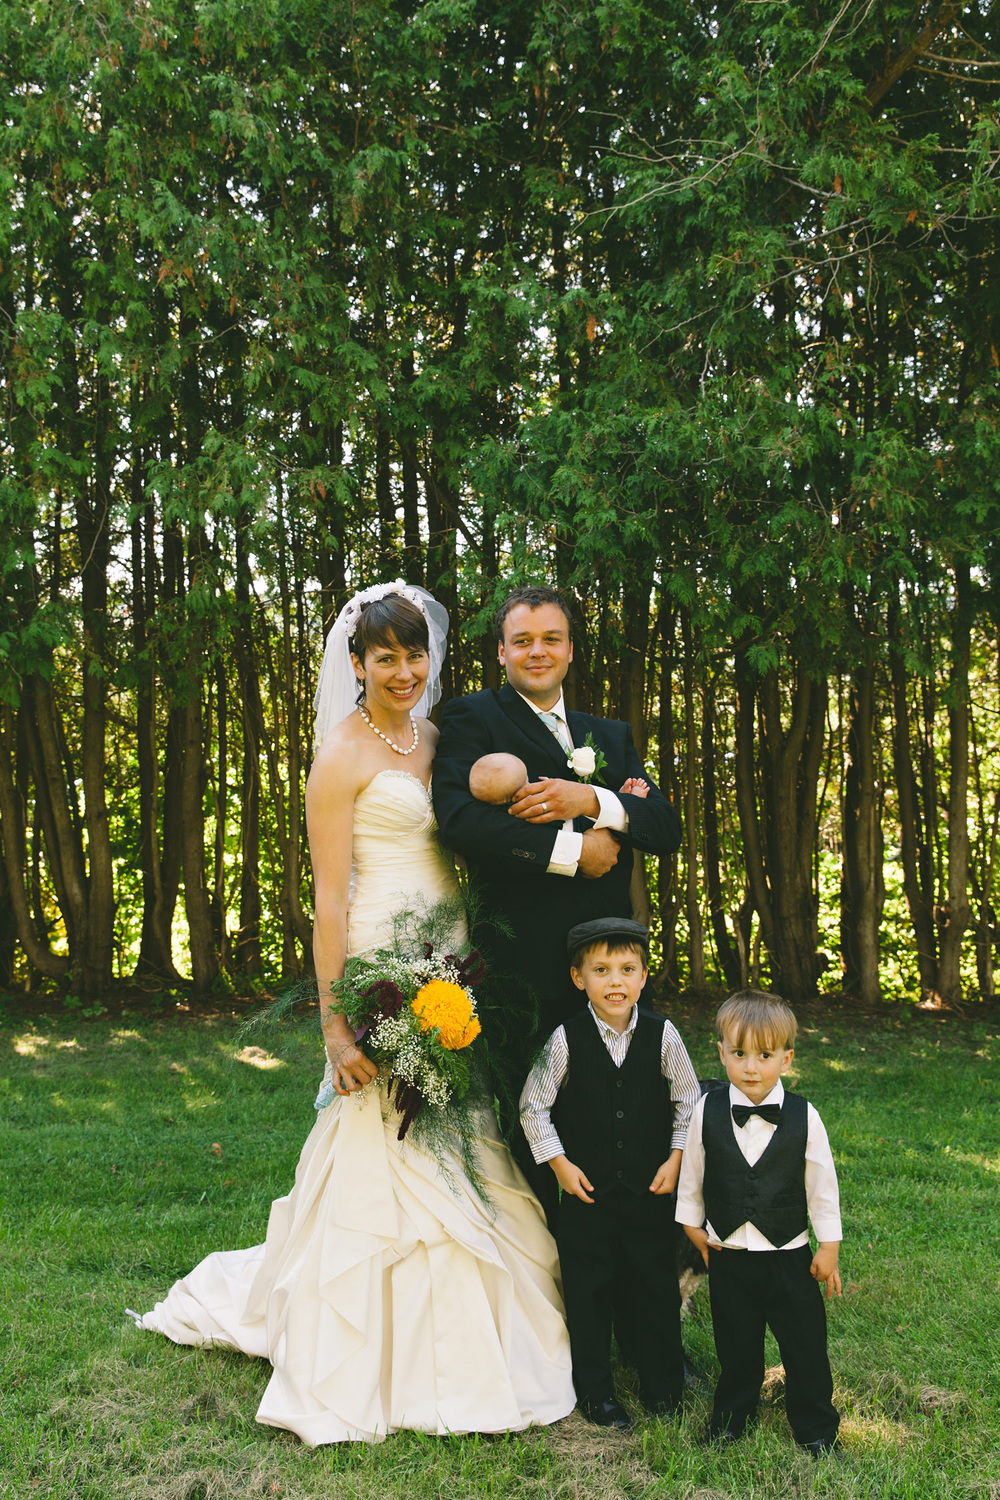 159-georgian-bay-wedding.jpg